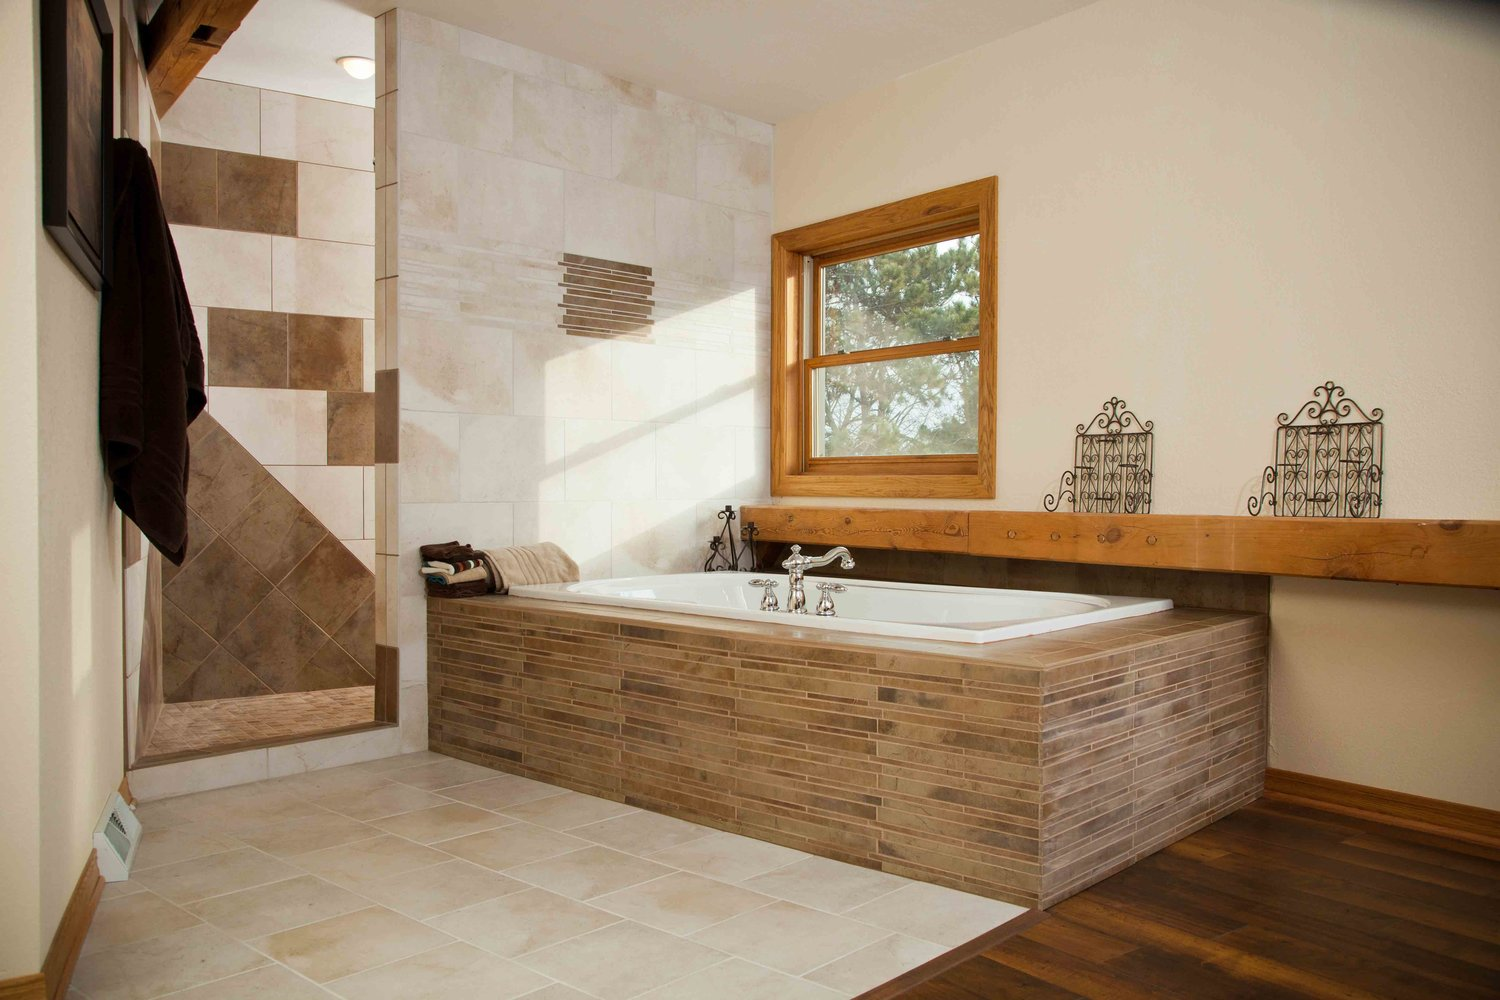 The Pros And Cons Of A Doorless Walk In Shower Design When